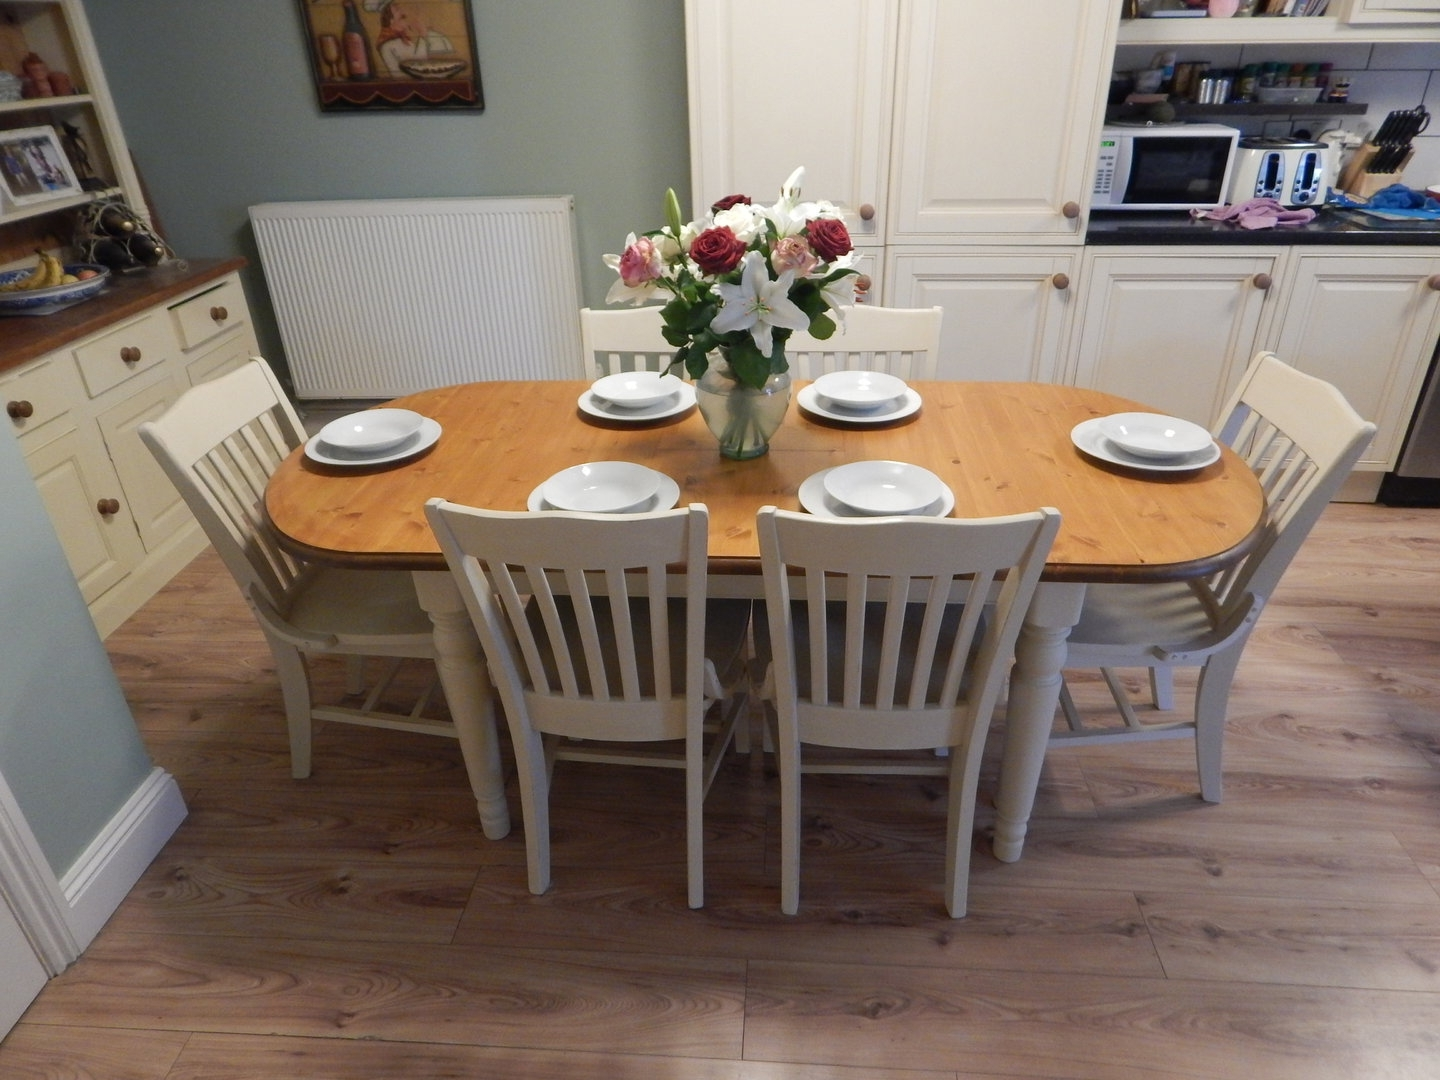 Preferred Extending Dining Tables With 6 Chairs In Shabby Chic , Ducal Pine Extending Dining Table & 6 Chairs (View 16 of 25)